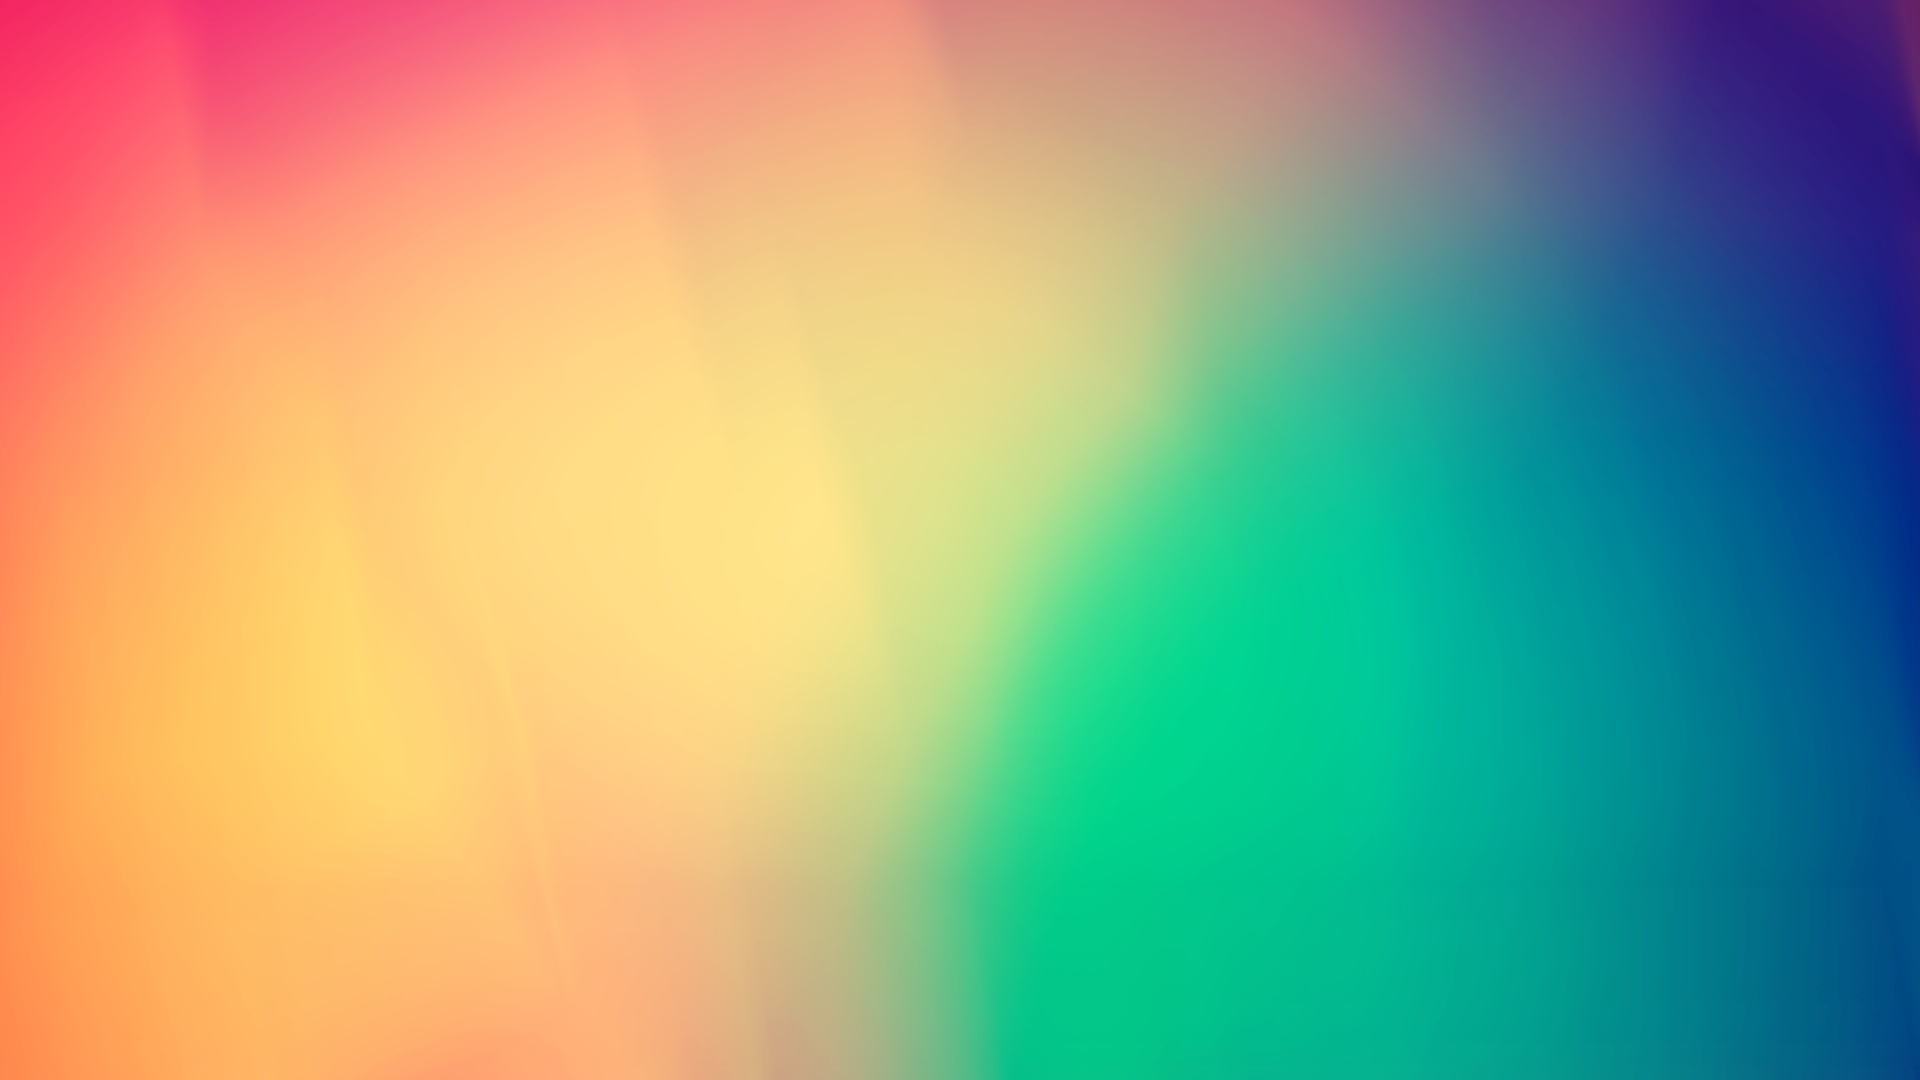 Colorful Plain Wallpaper